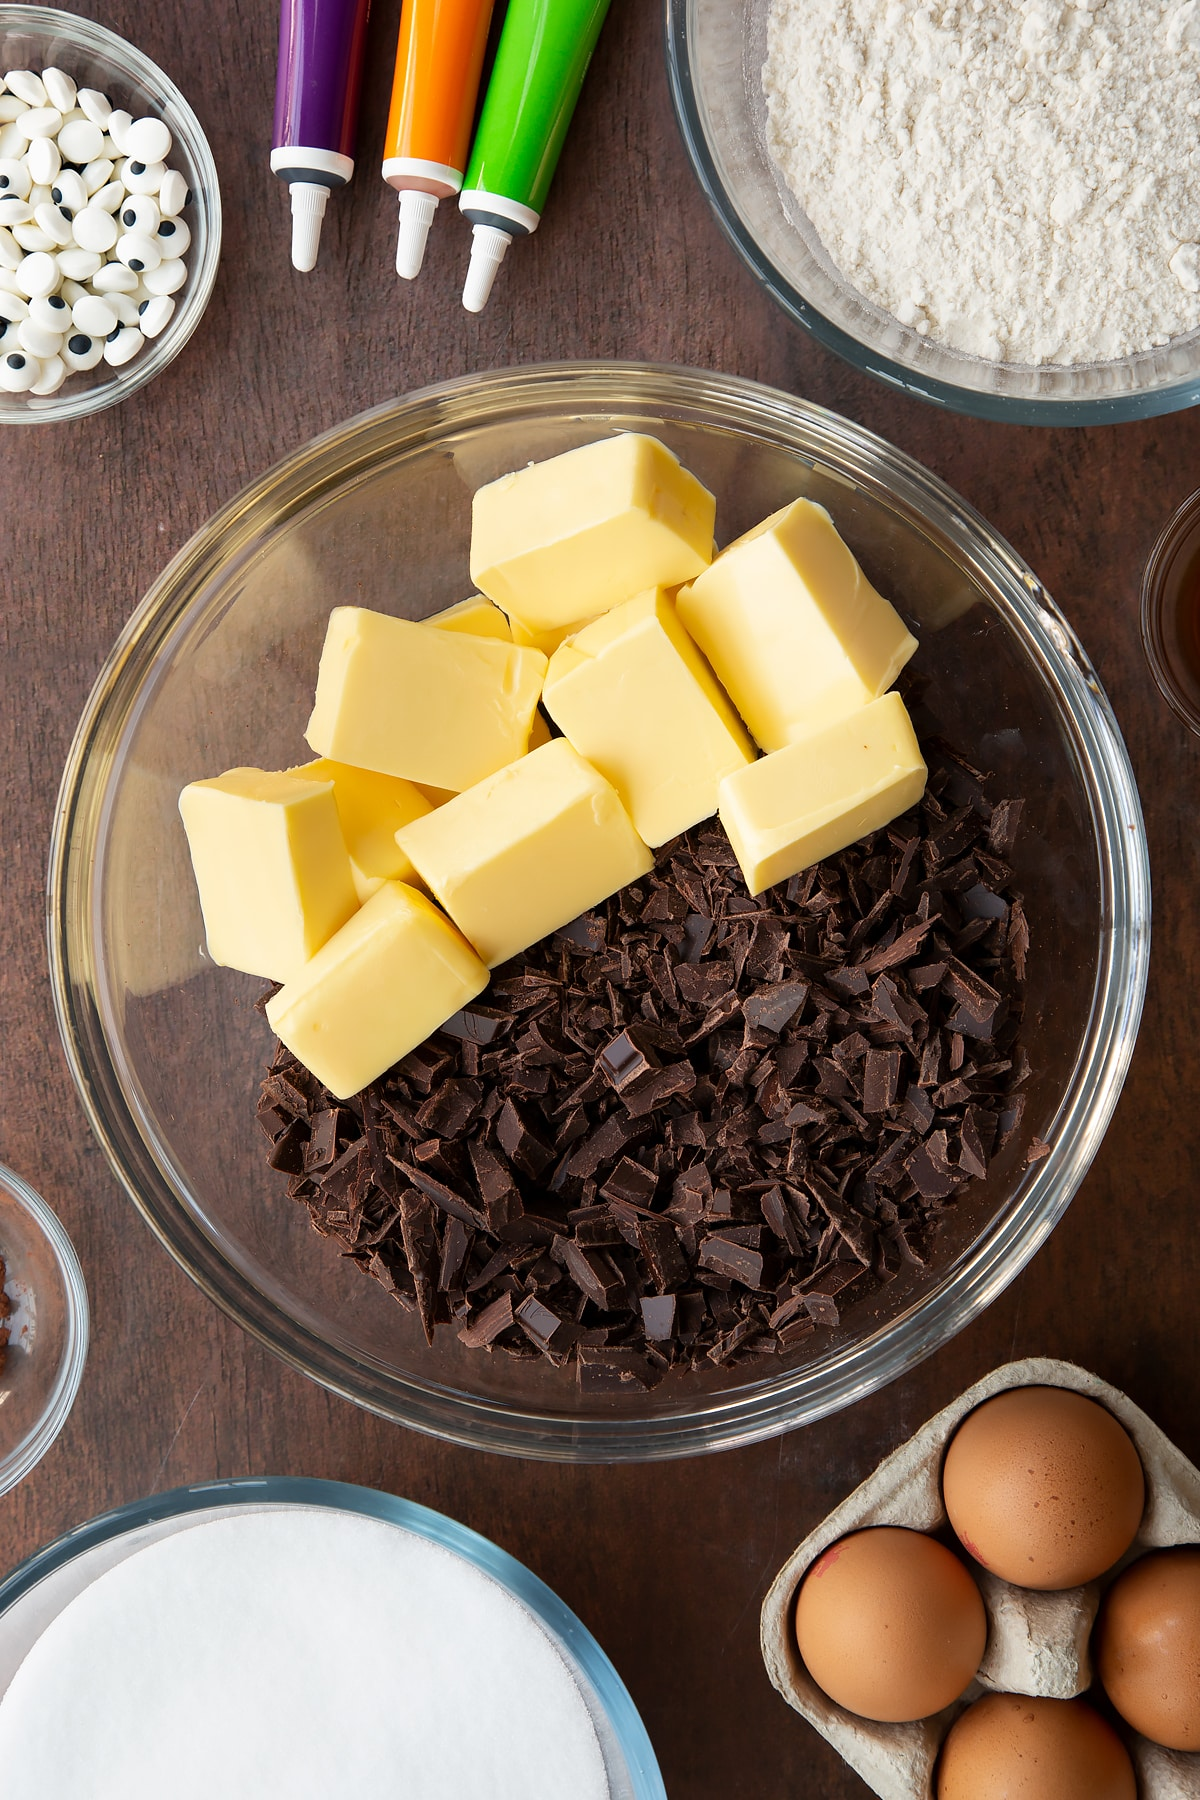 Butter and chopped dark chocolate in a glass bowl. Ingredients to make Halloween brownies surround the bowl.